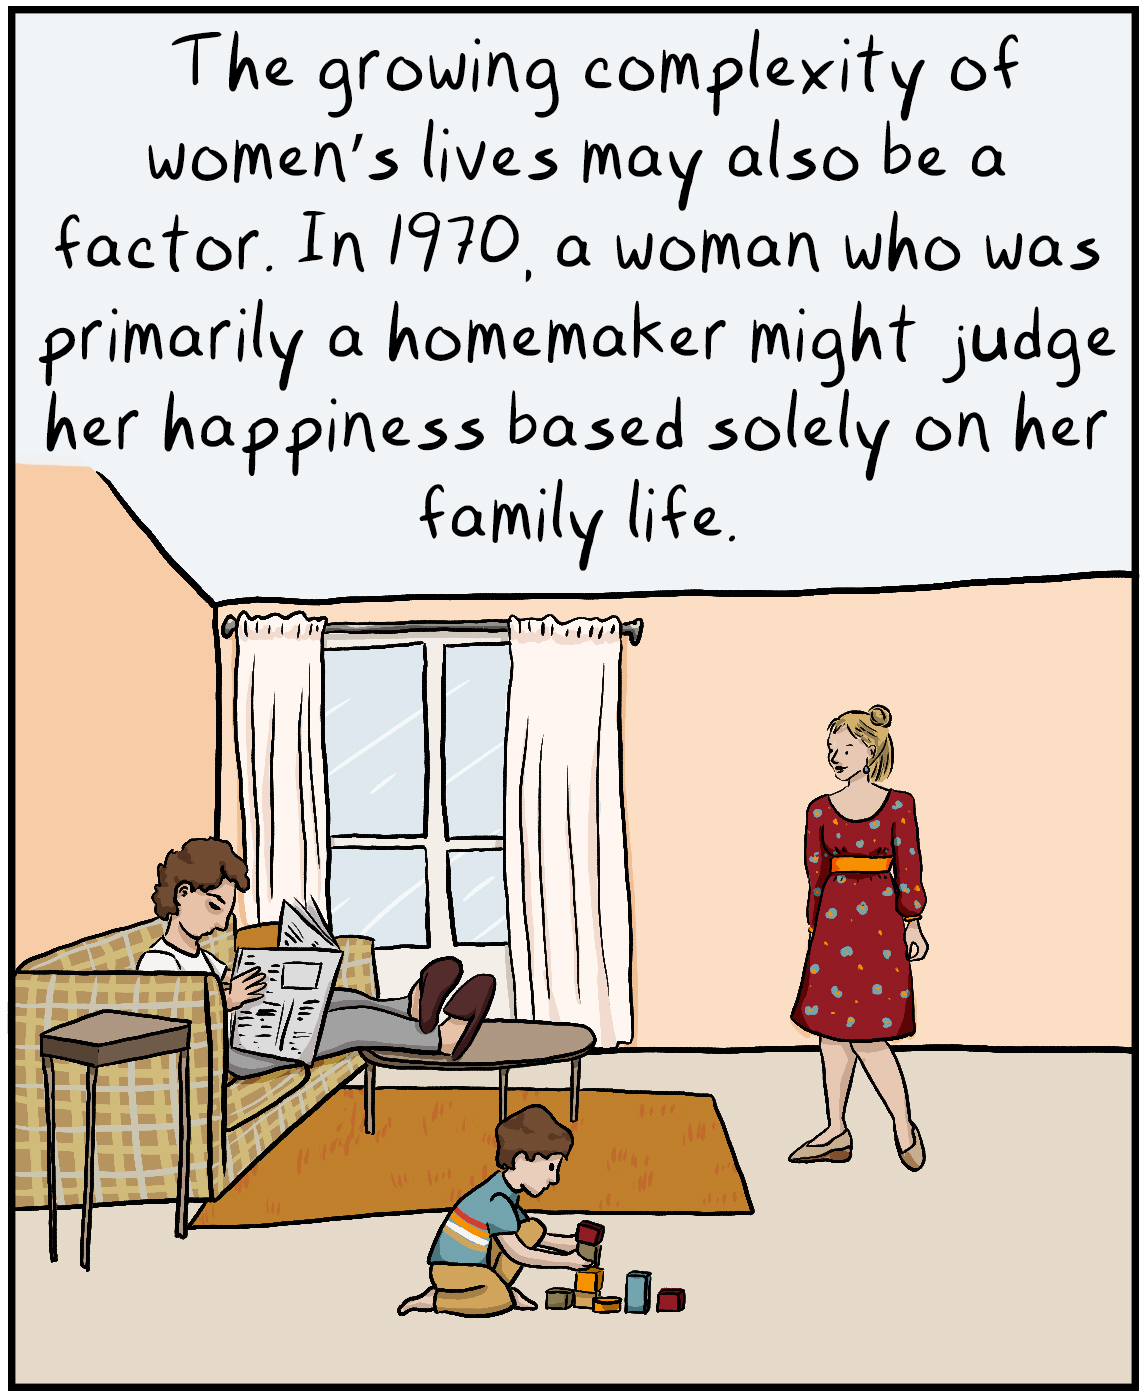 The growing complexity of women's lives may also be a factor. In 1970, a woman who was primarily a homemaker might judge her happiness based solely on her family life.